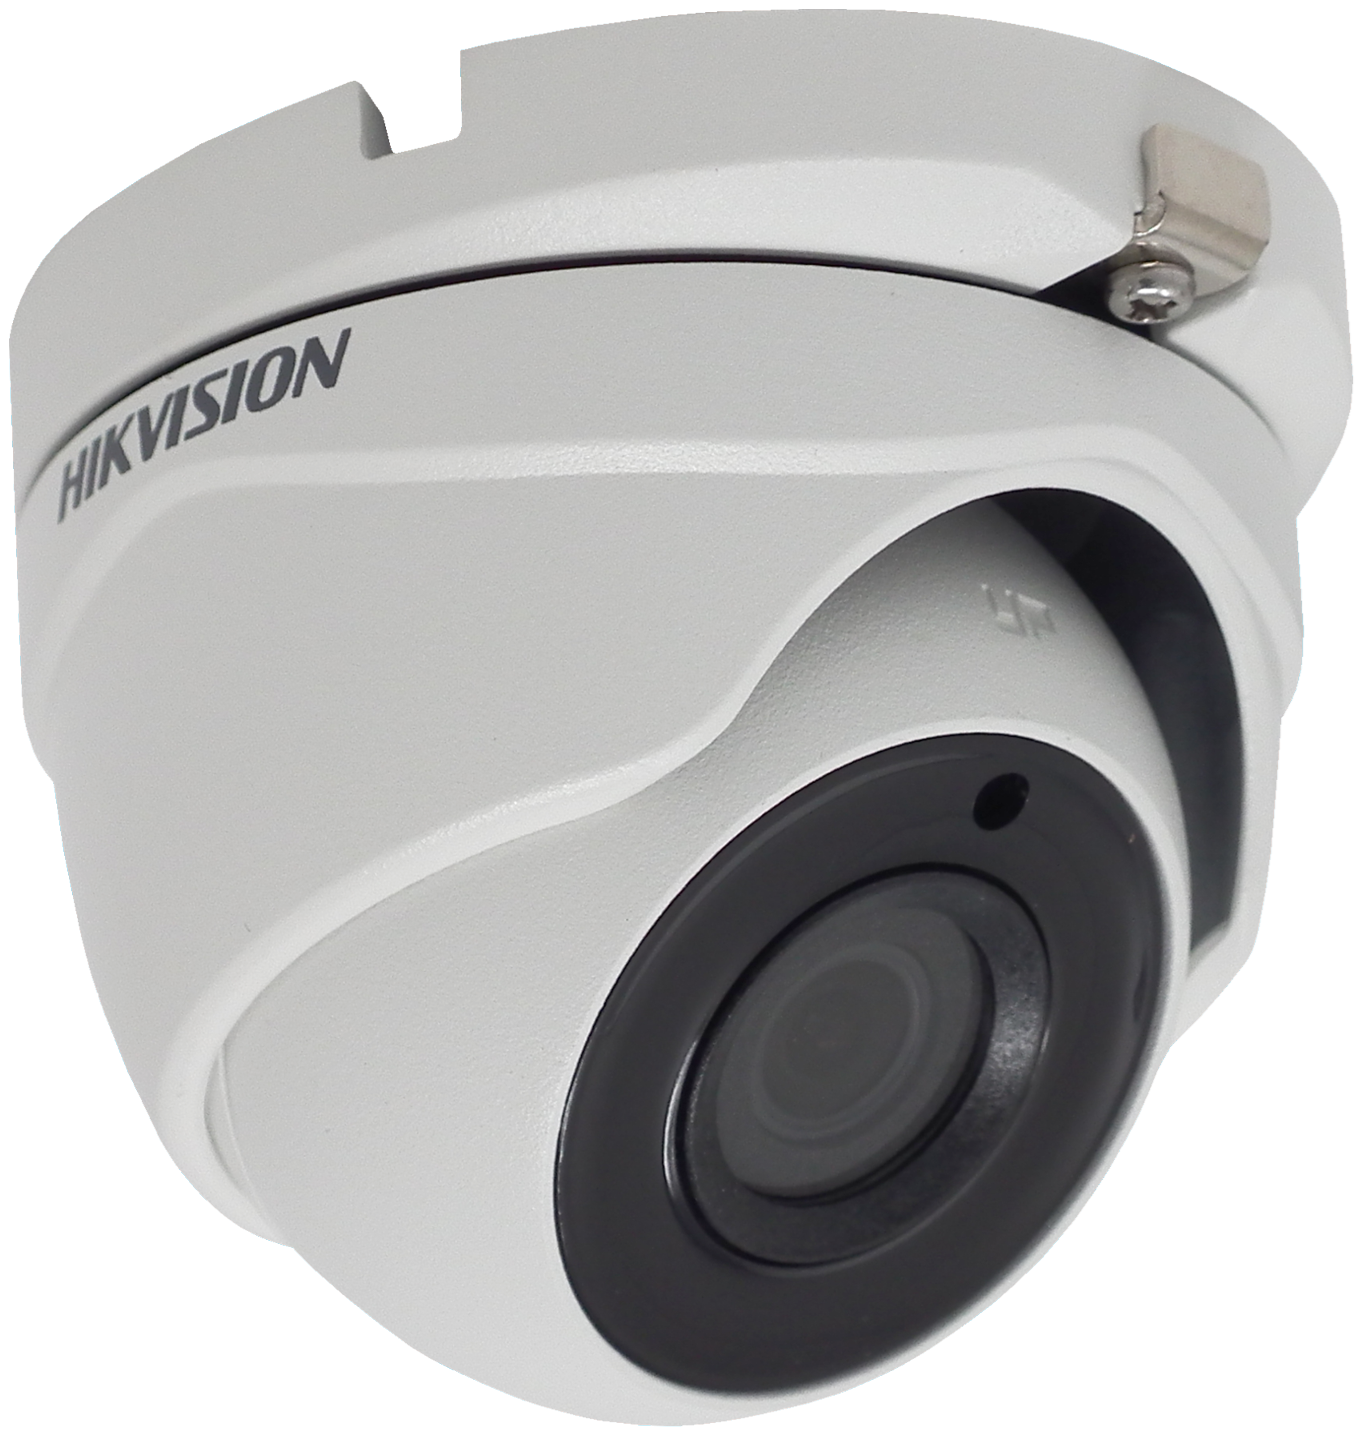 Picture of DS-2CE56D8T-ITMF 2.8mm 2MP EXIR Dome Camera